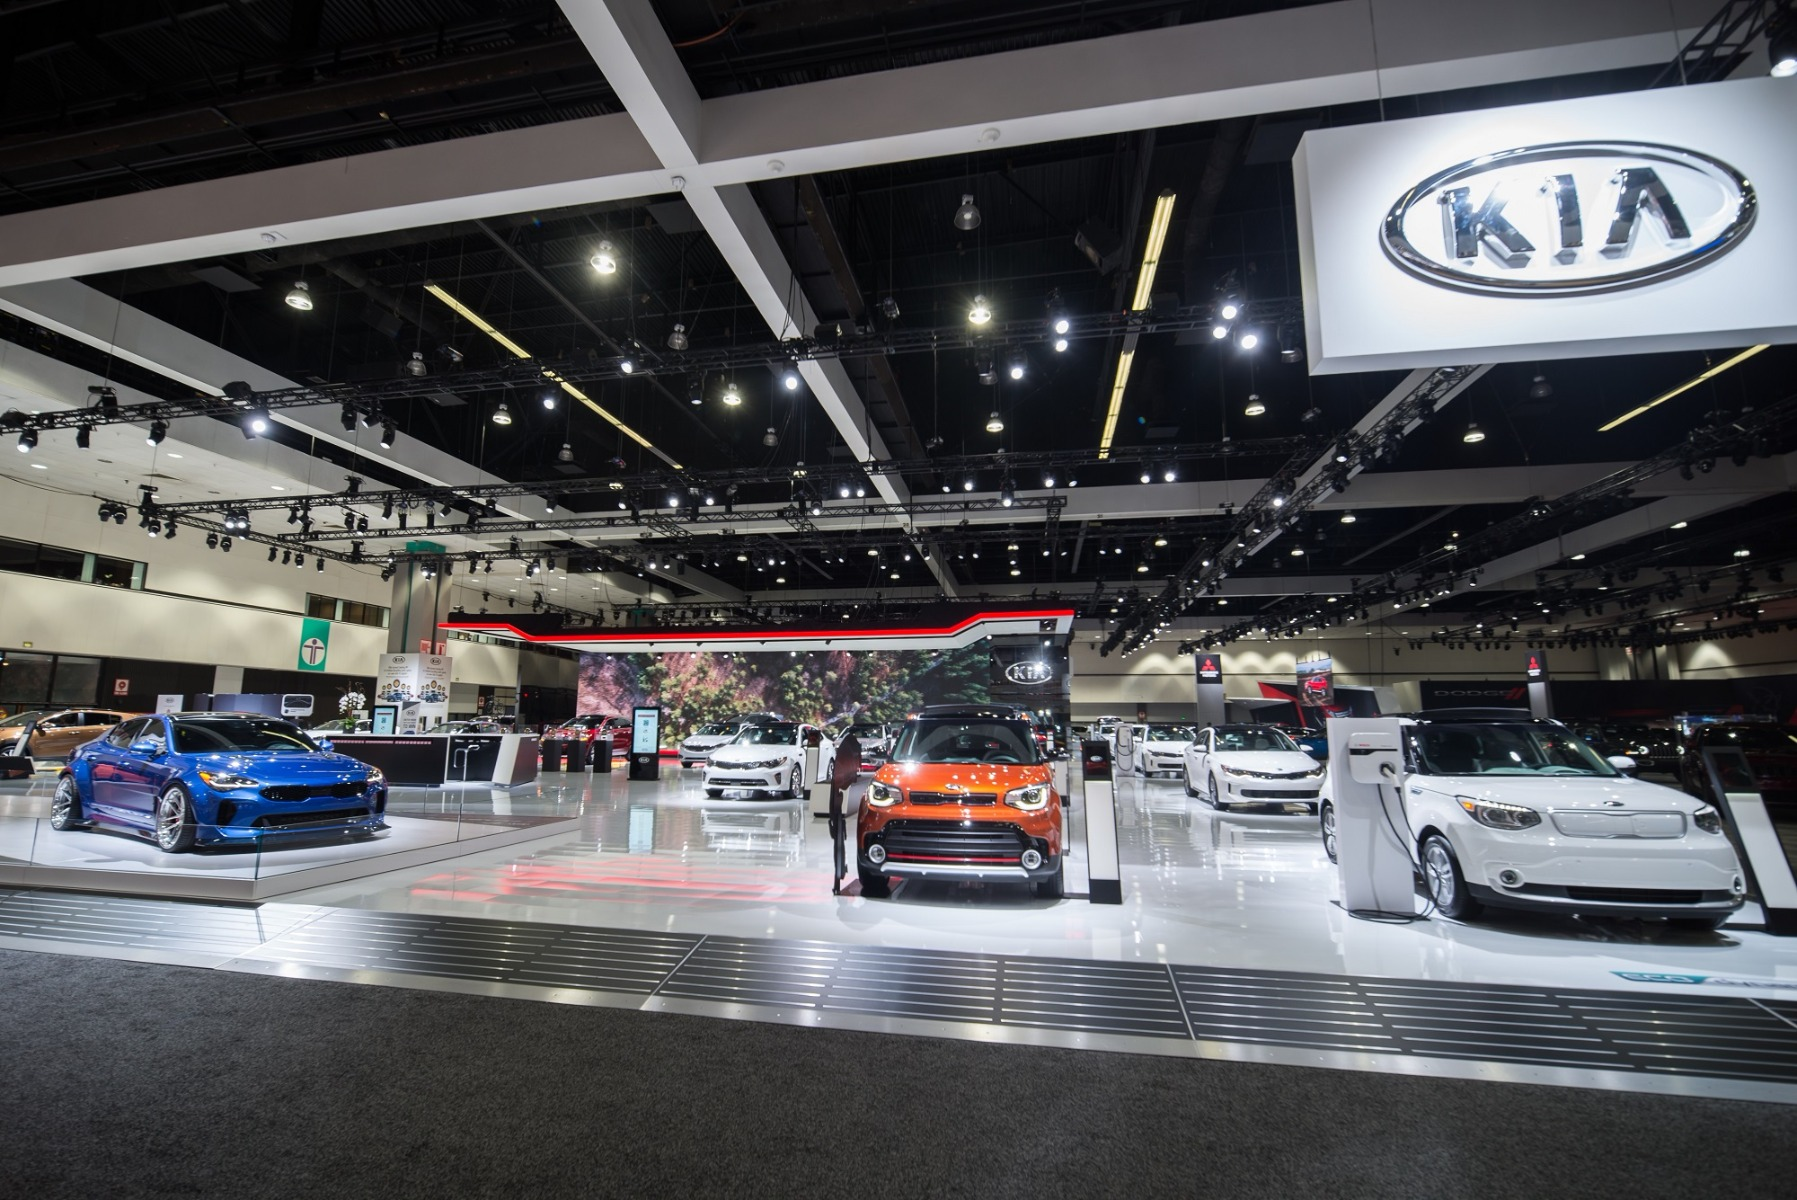 Elation Fuze Wash Highlights Kia Booth At LA Auto Show - When is the la car show